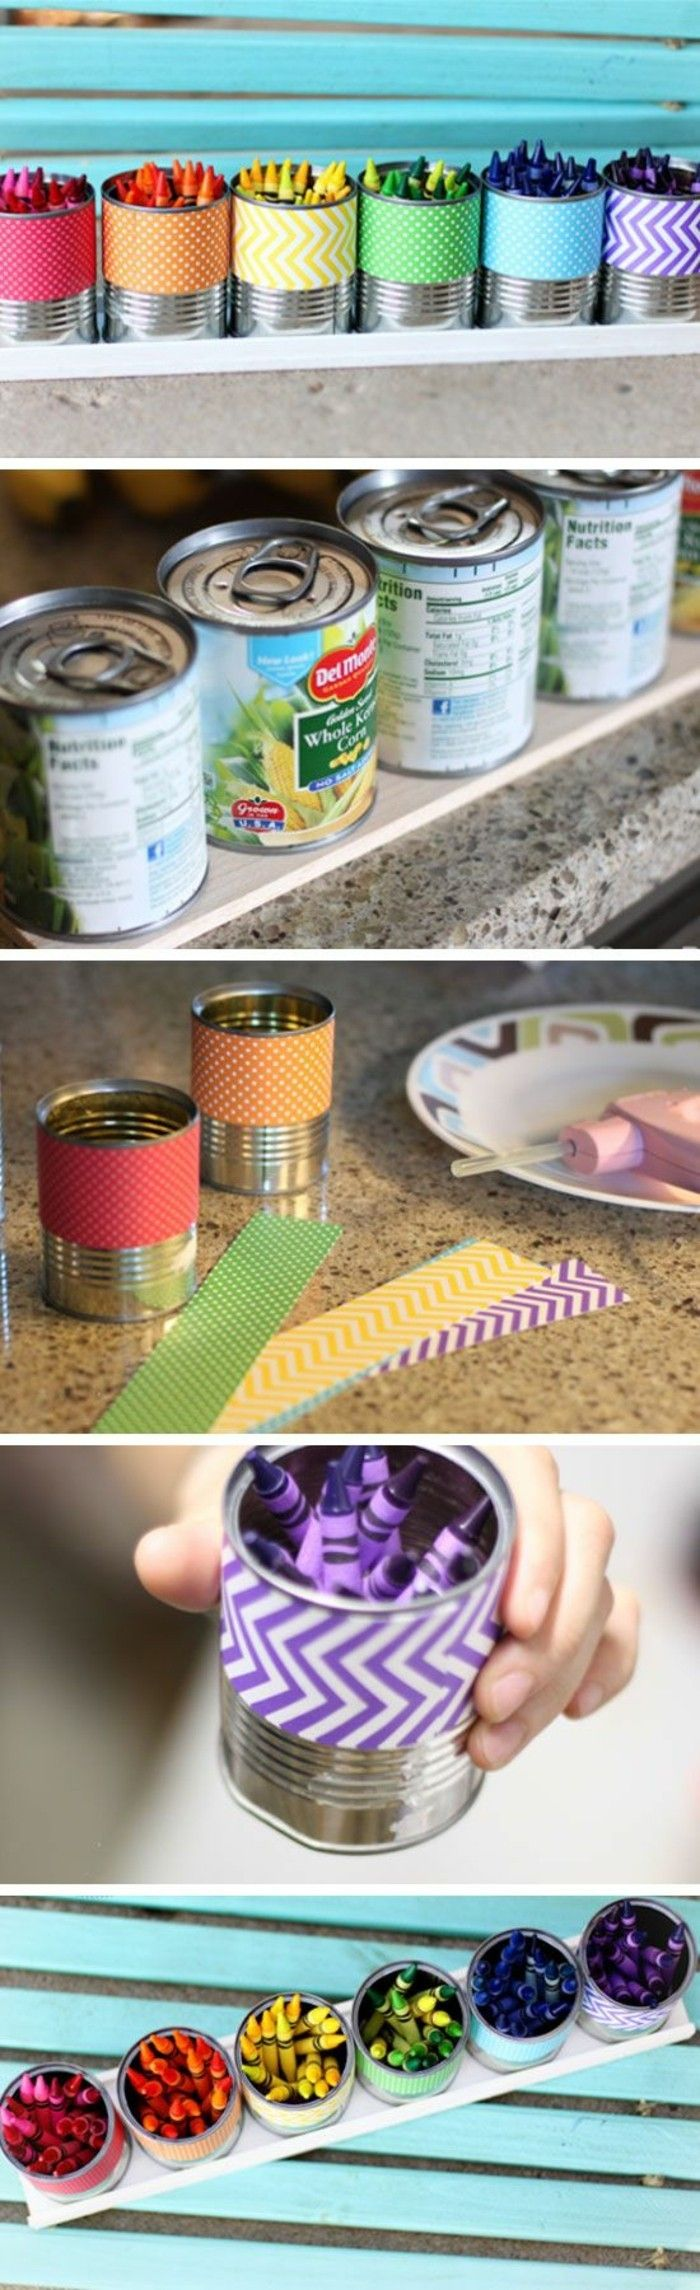 tinker-with-cans-decorate-colorful-pastel pencils-paper-diy-teller